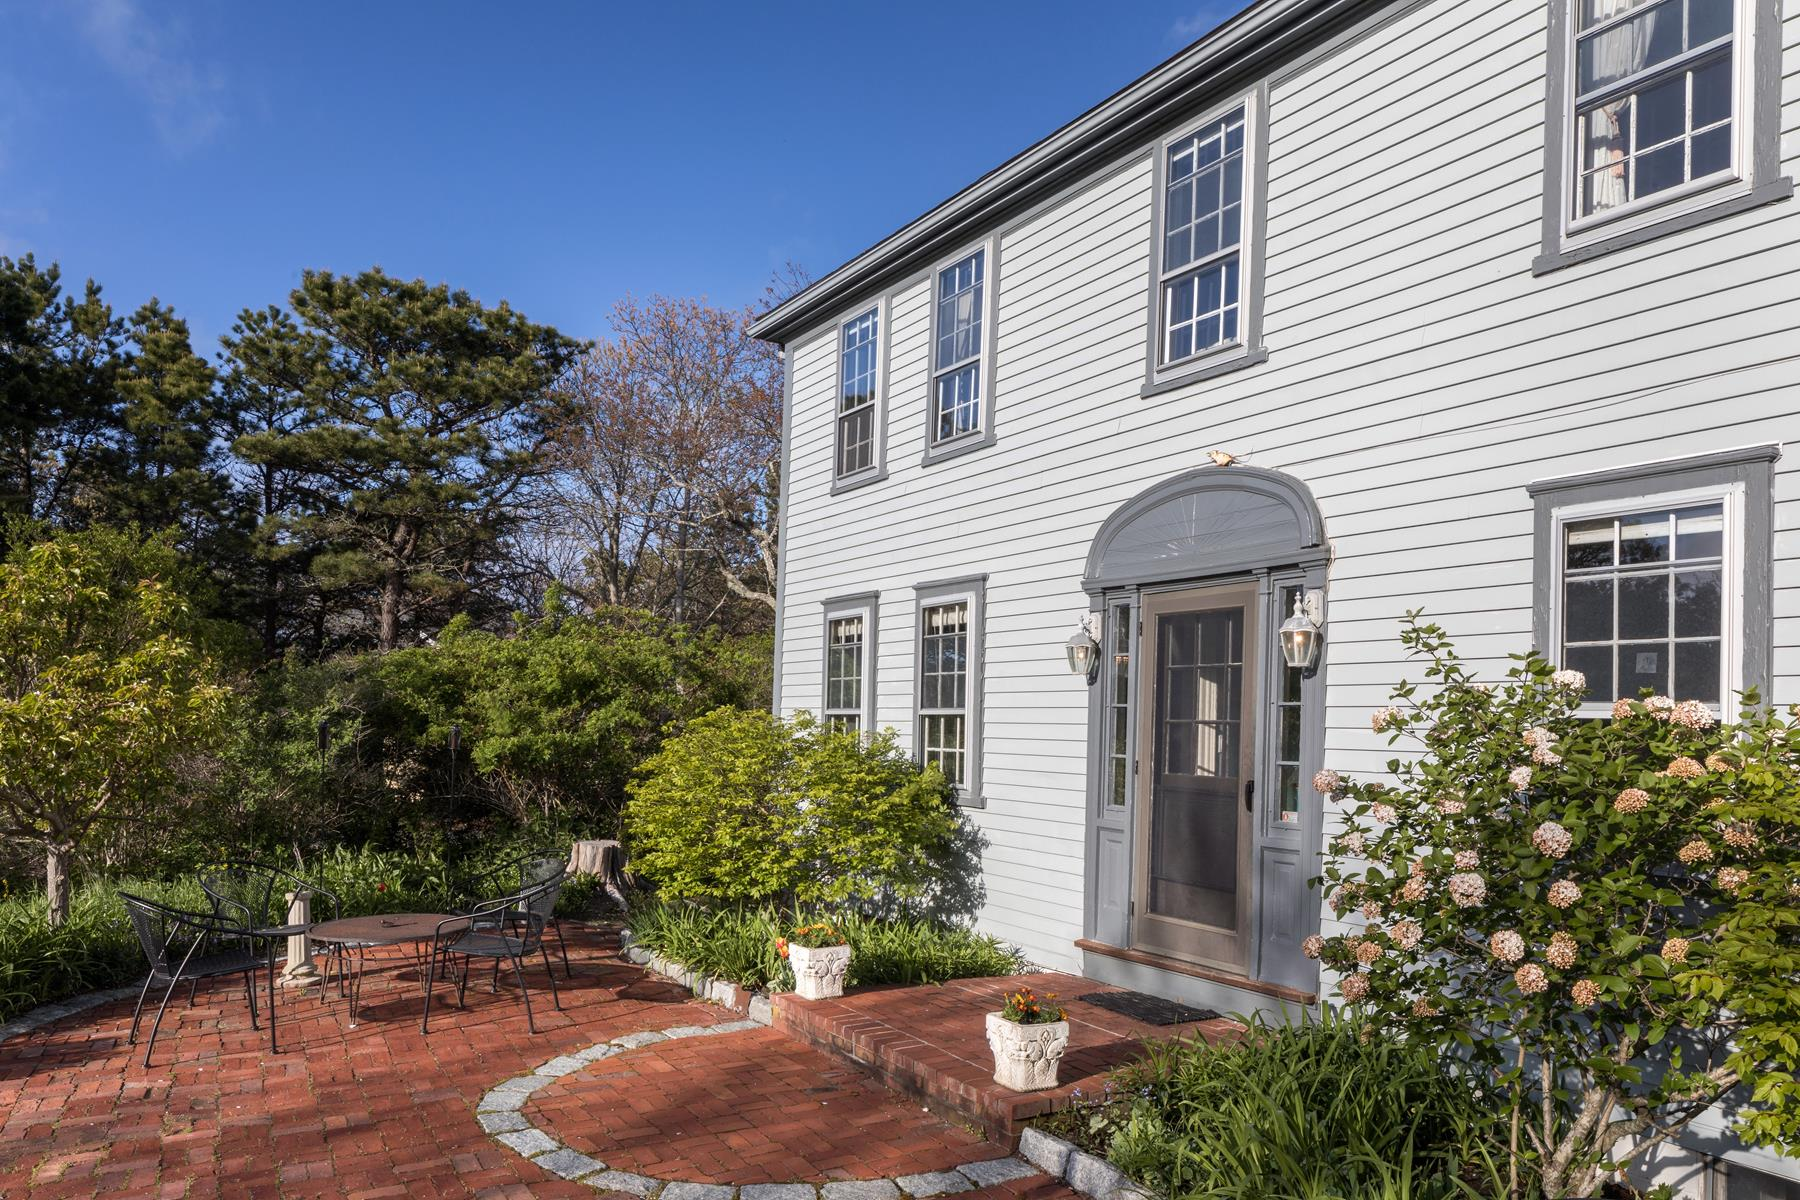 Single Family Home for Sale at Henry David Thoreau Slept here! 24 Old County Road Truro, Massachusetts 02666 United States